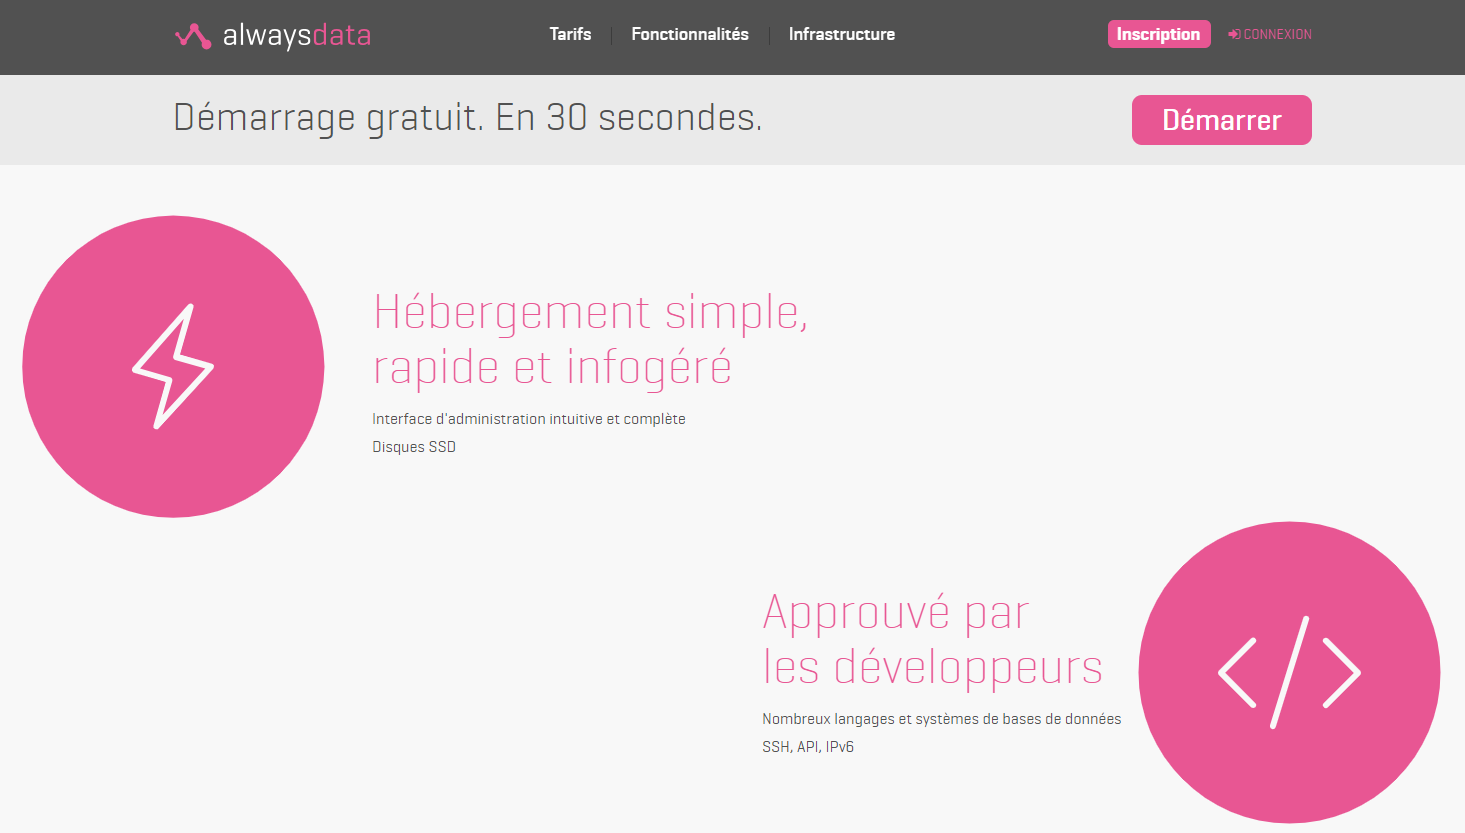 Alwaysdata-Hebergement-simple-rapide-infogere